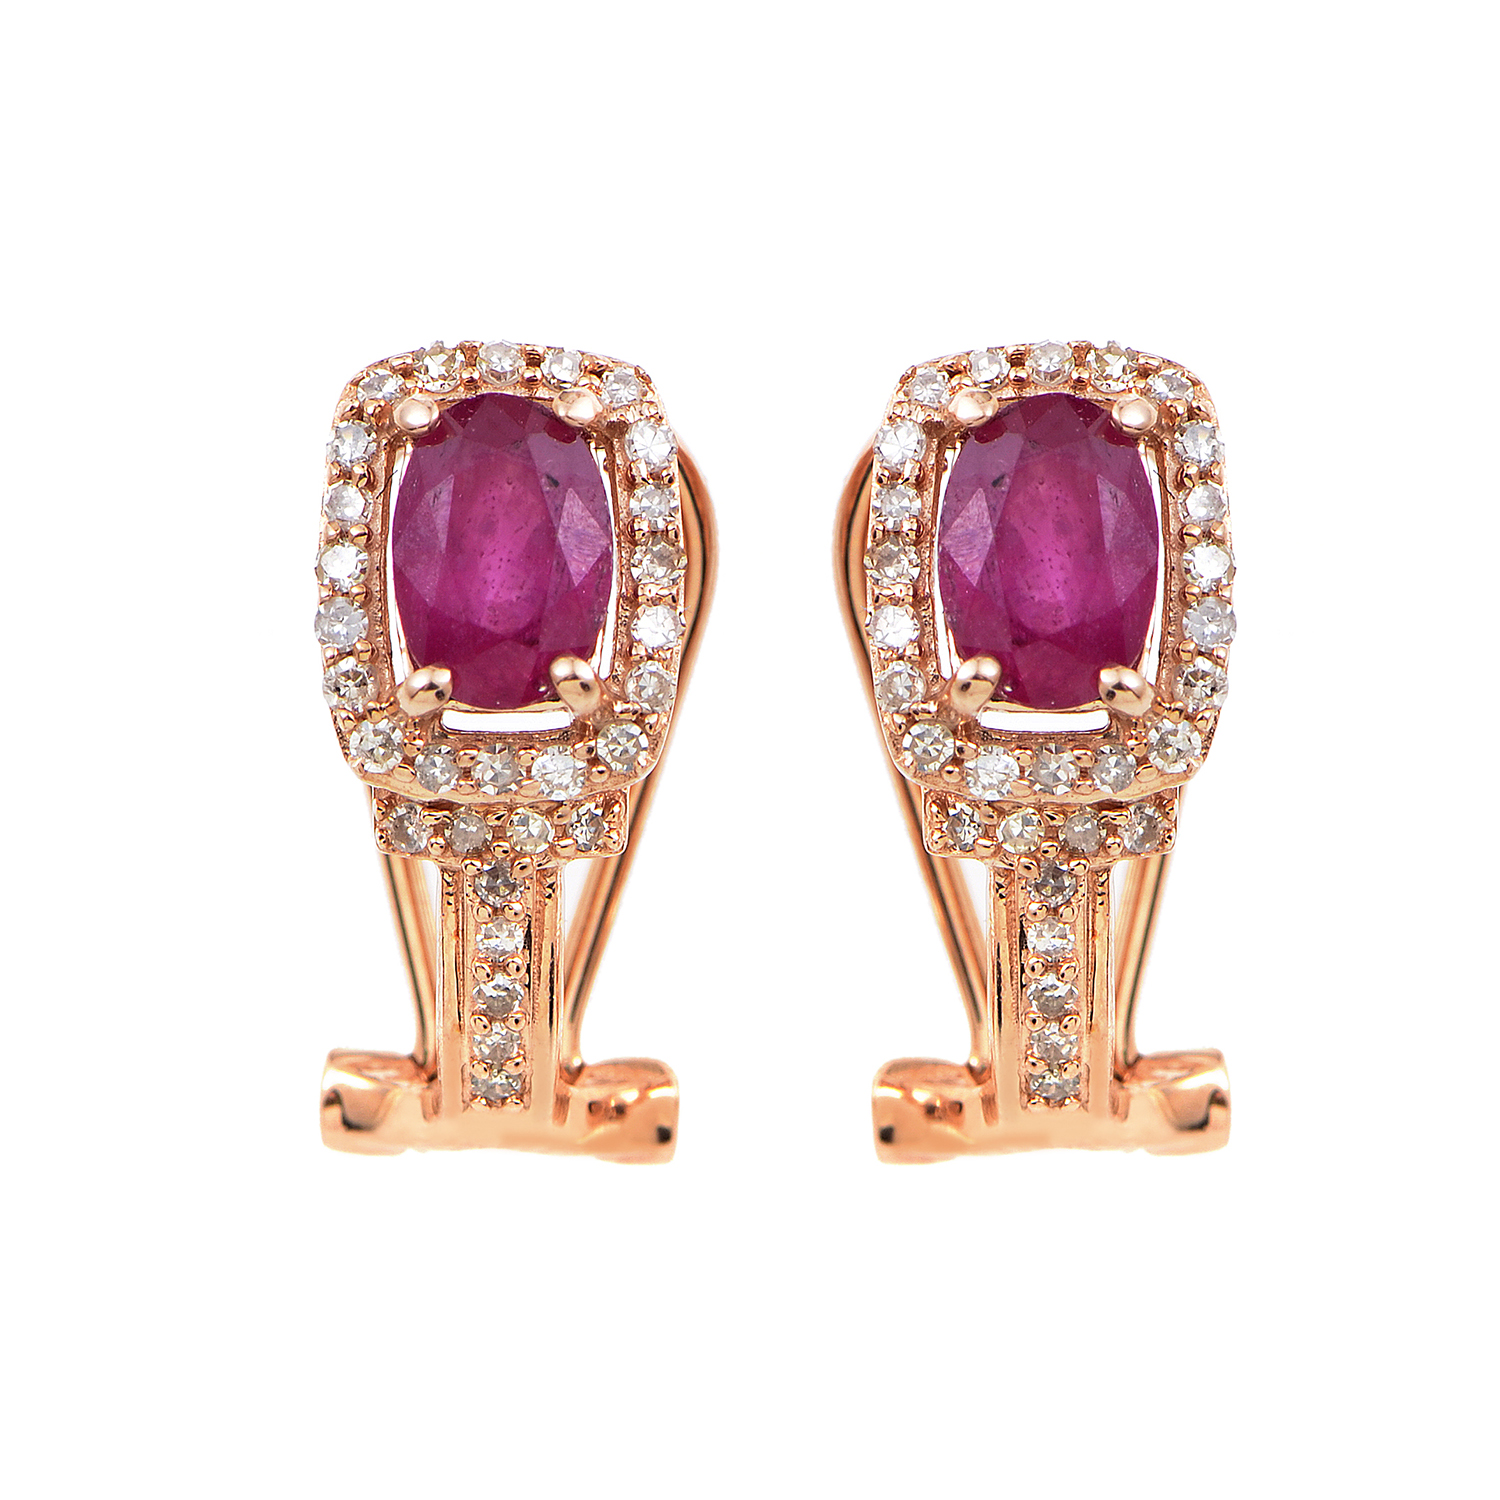 14K Rose Gold Diamond & Ruby Earrings EL4-10054RRU